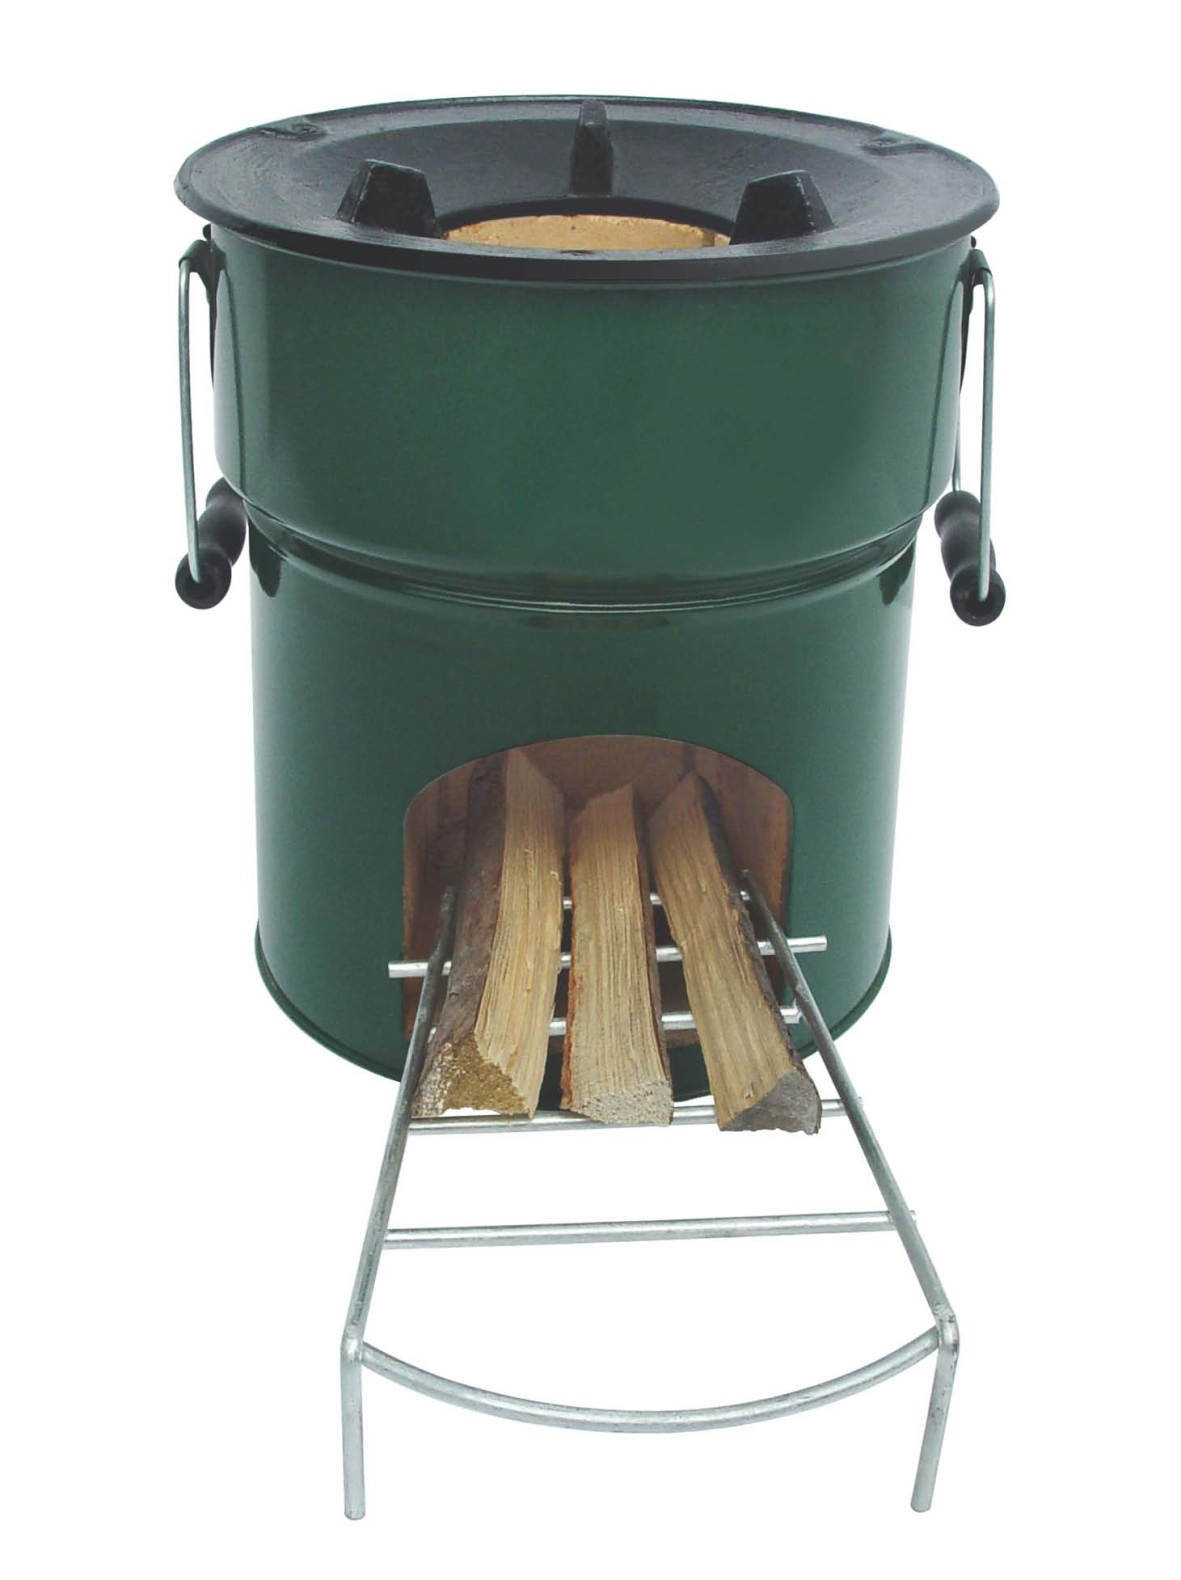 greenfire rocket stove for camping west county